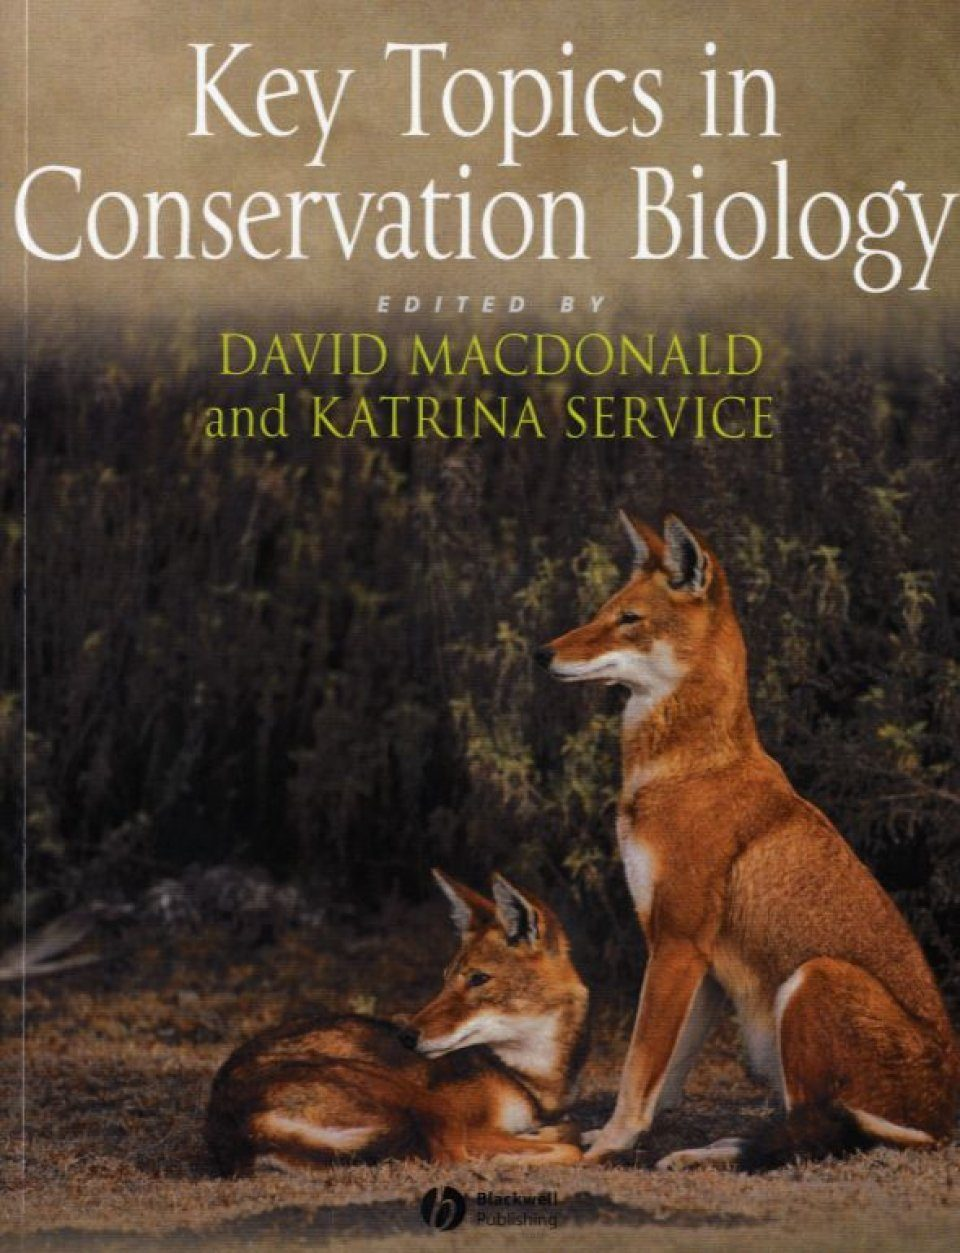 Key Topics in Conservation Biology, Volume 1